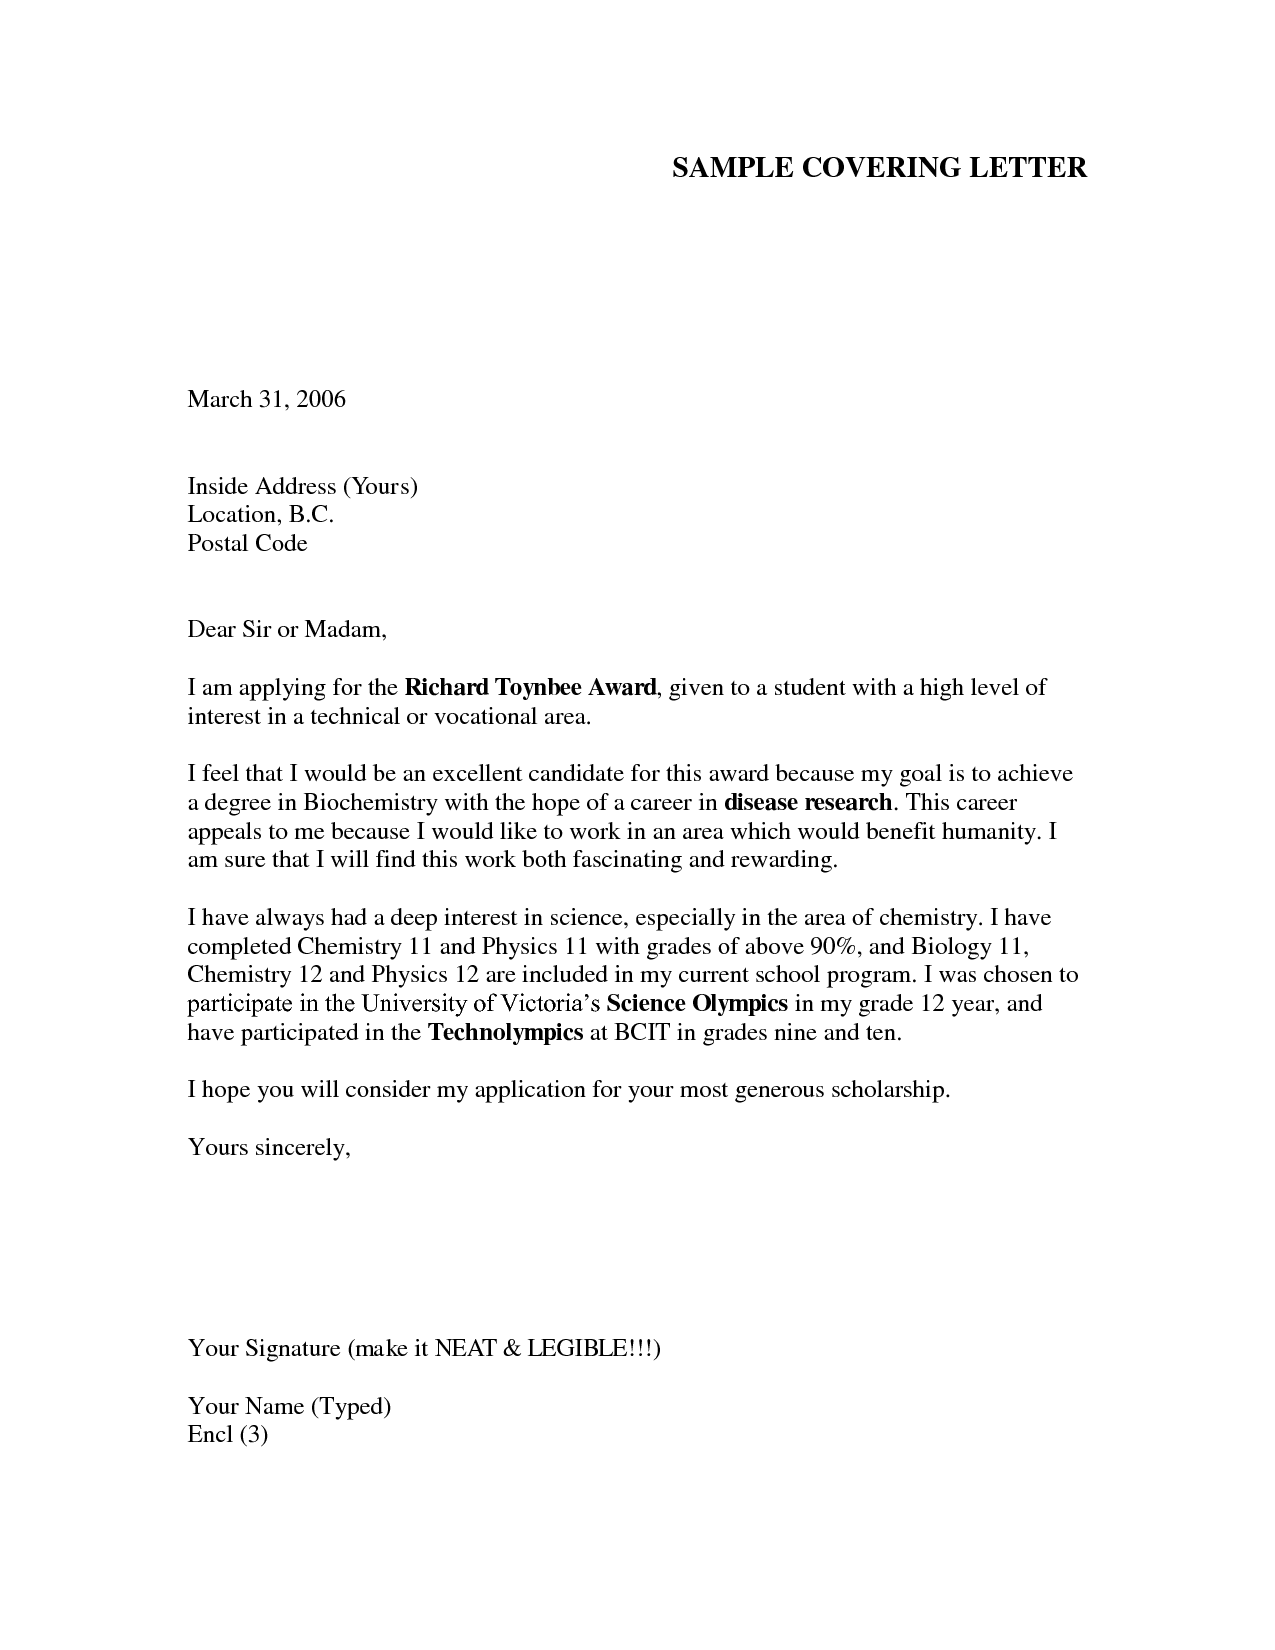 Template cover letter for job application thecheapjerseys Images